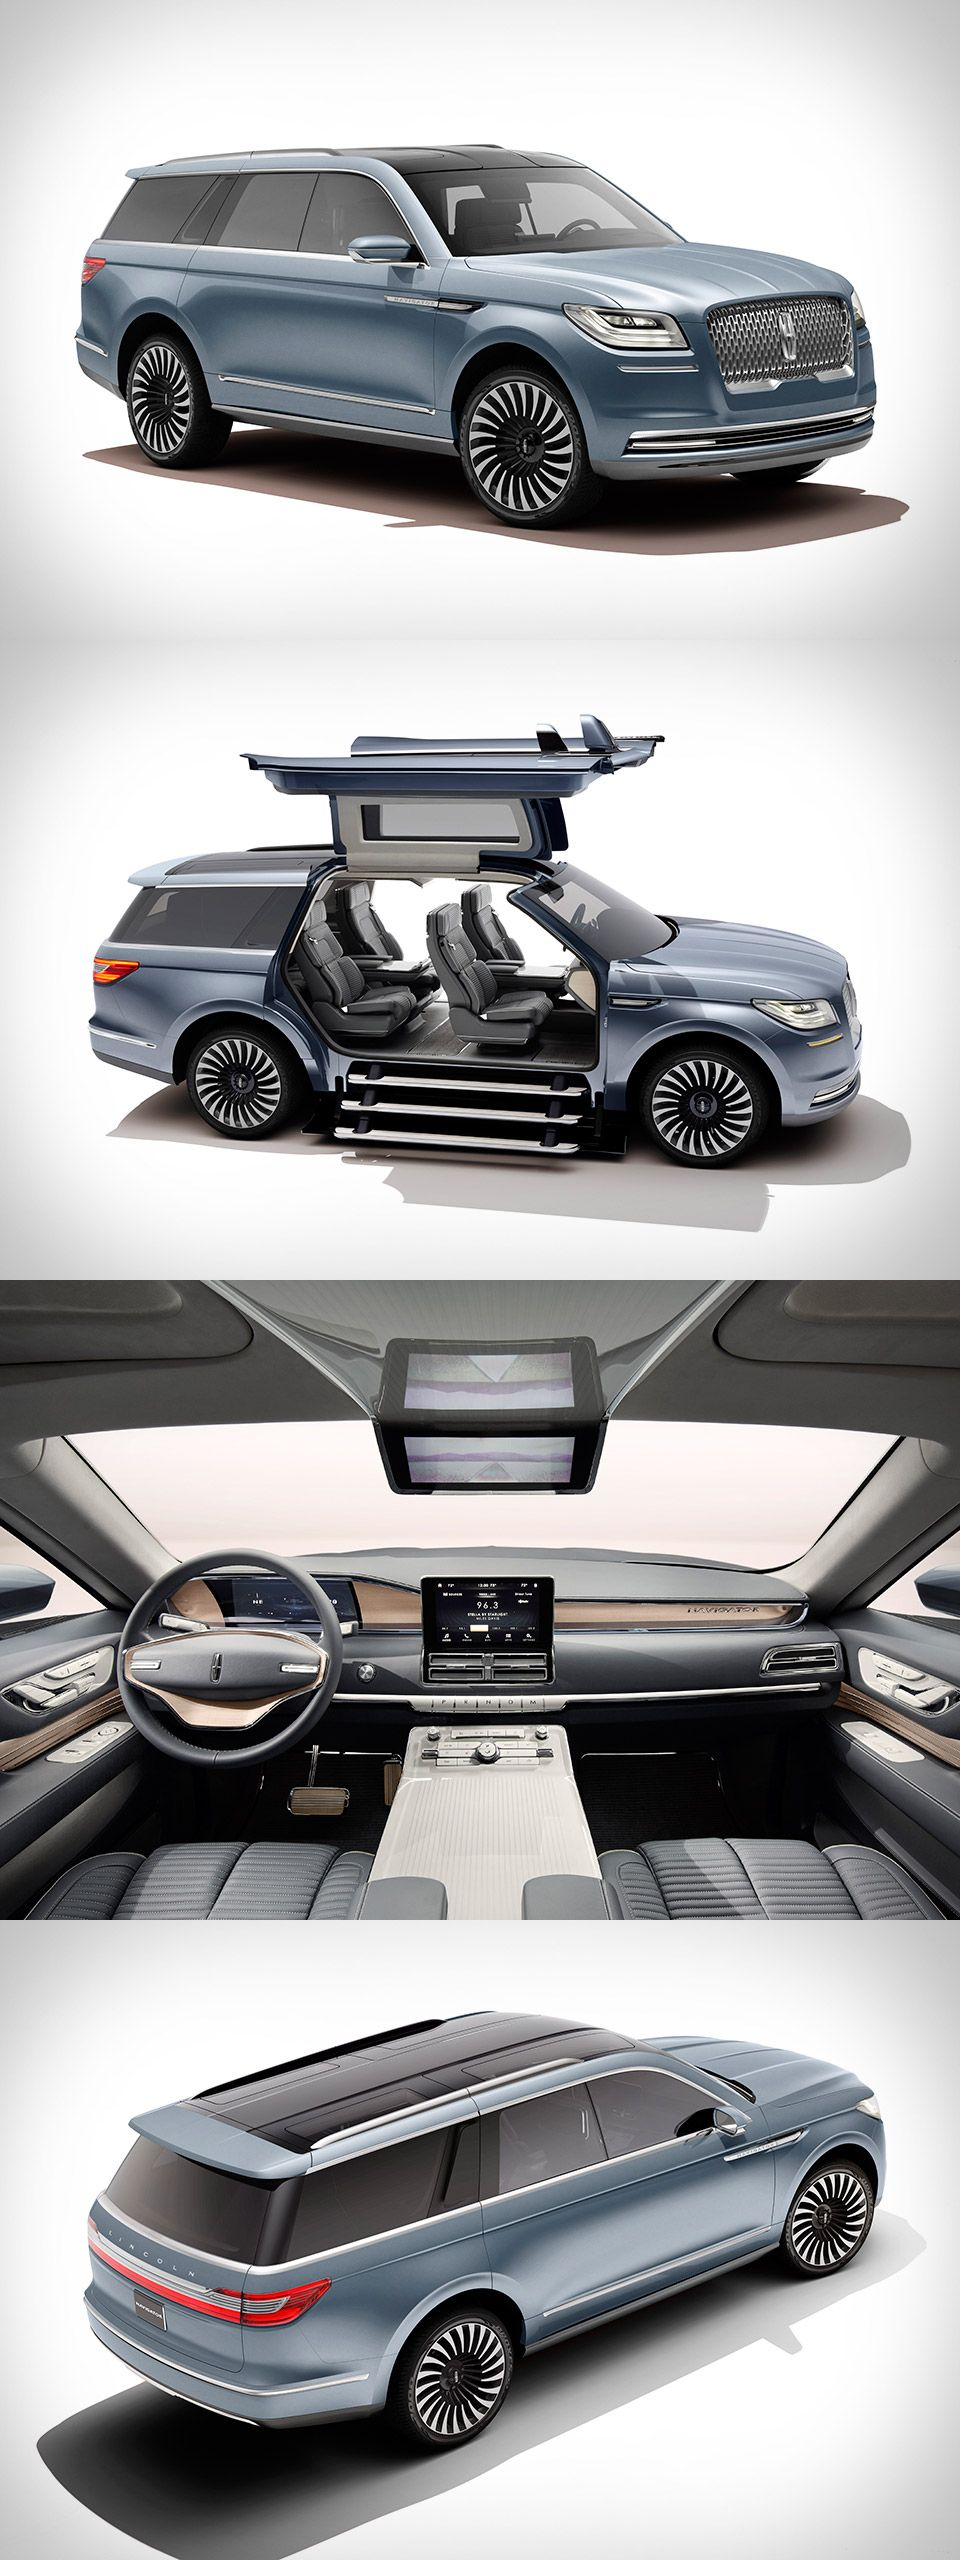 Download Rome Ford Lincoln